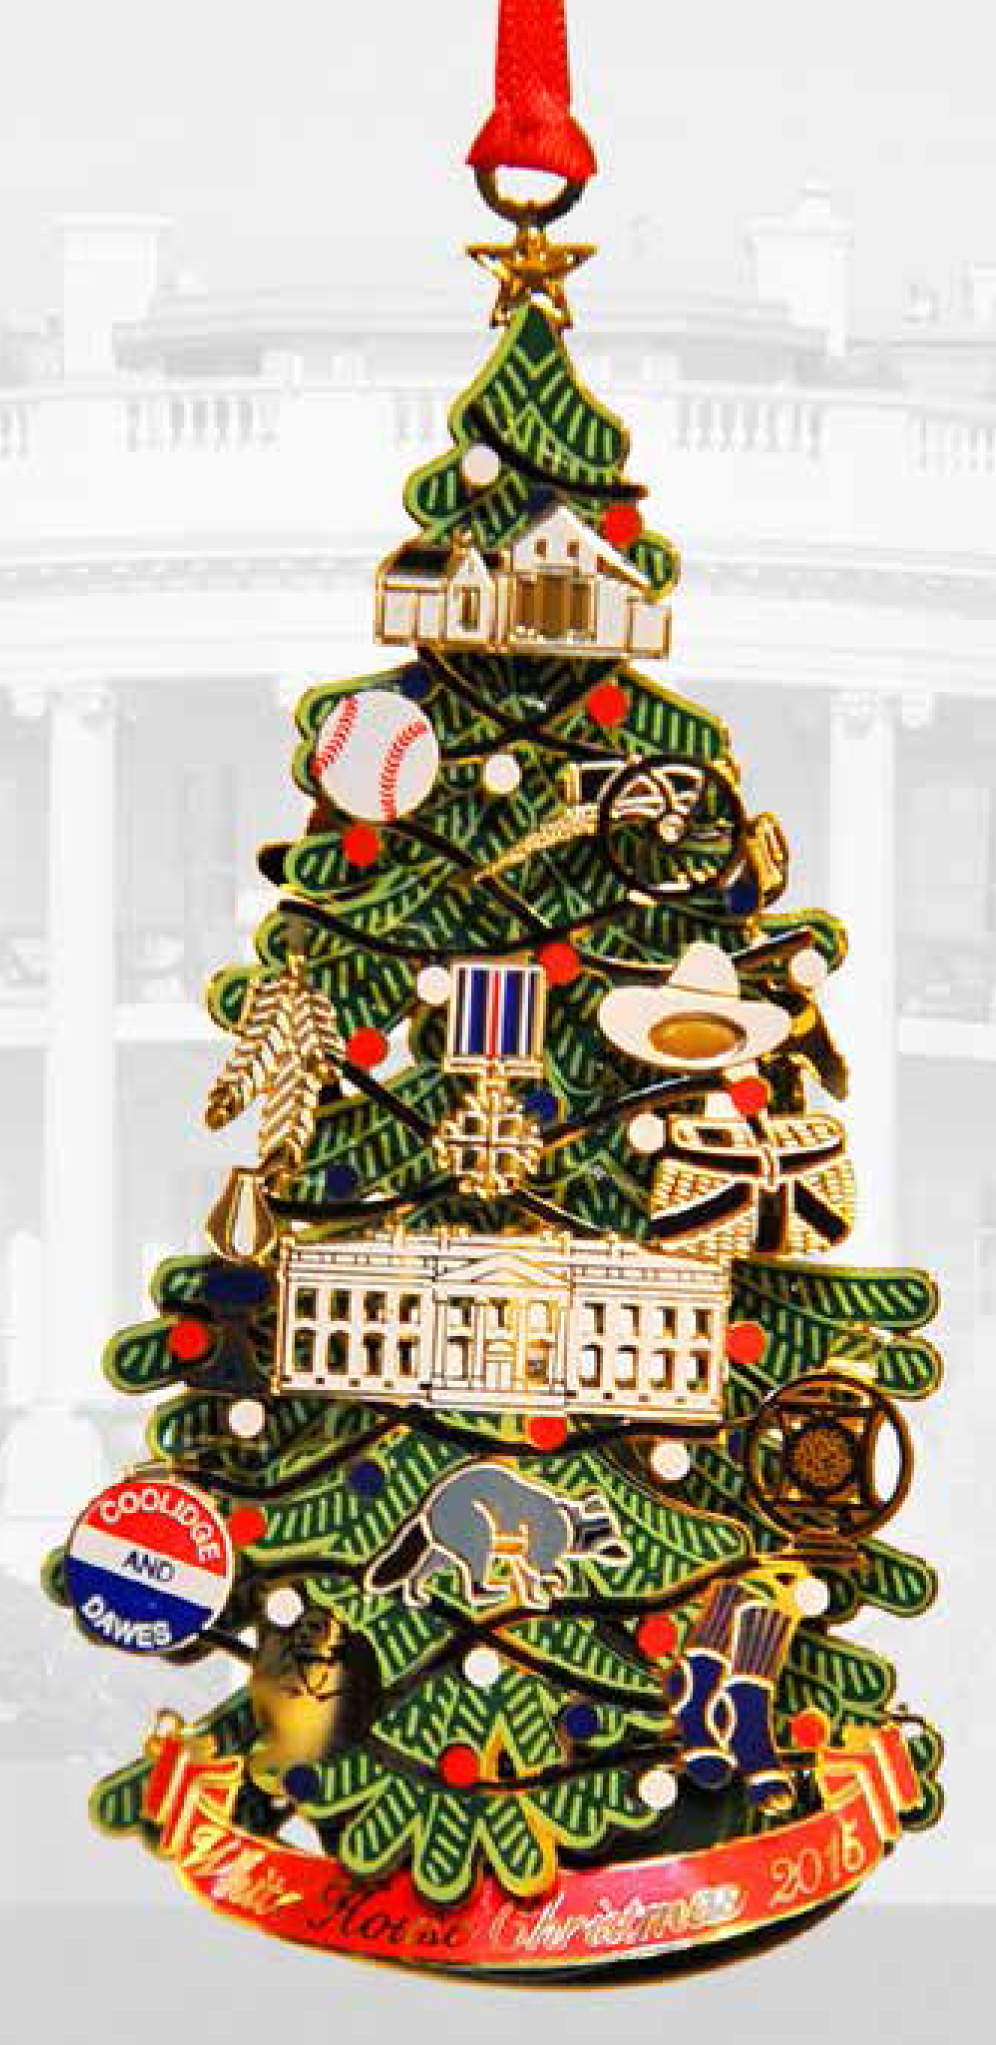 White house christmas ornaments historical society - The White House Christmas Ornament 2015